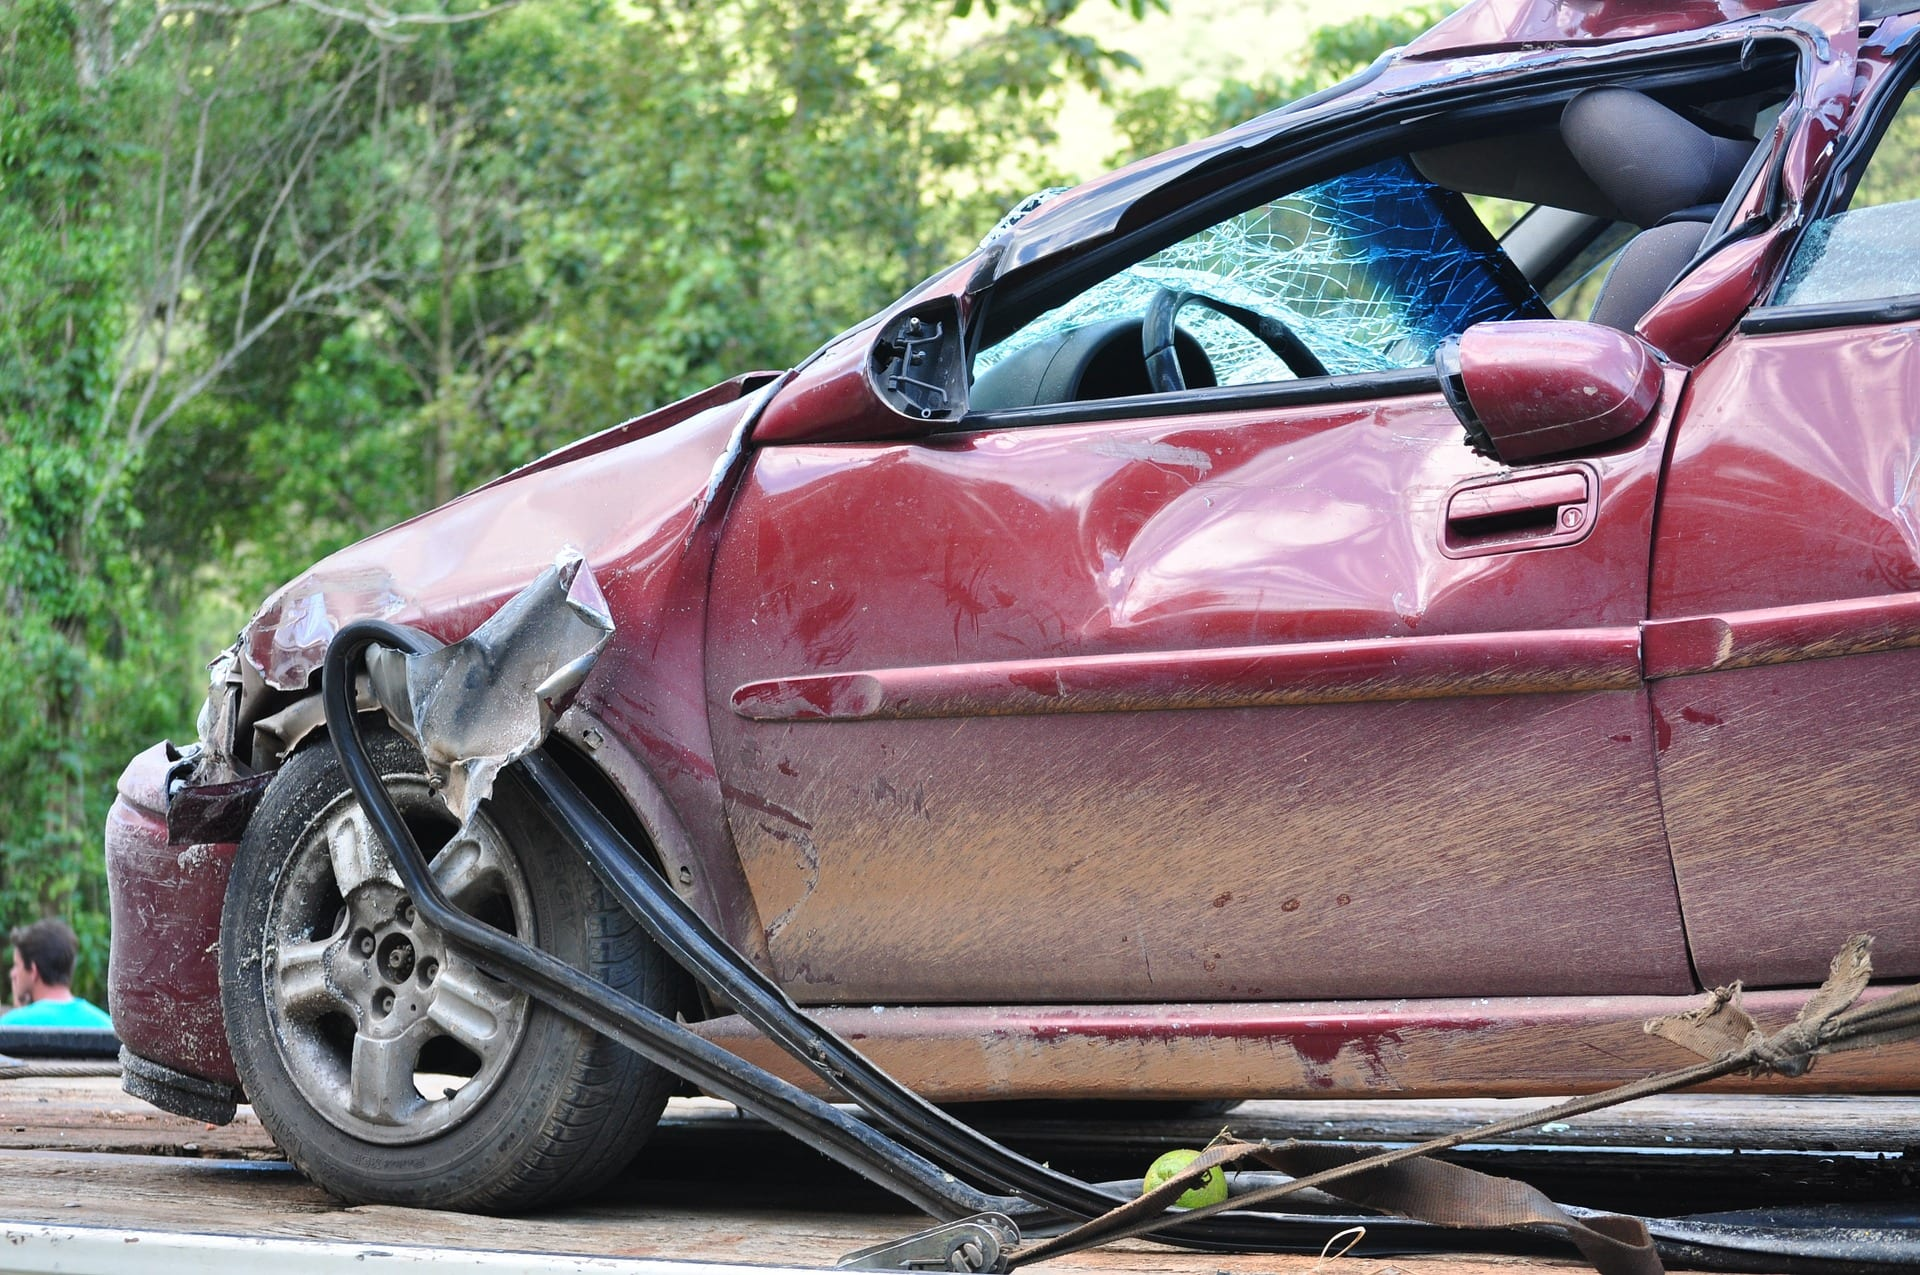 A damaged vehicle. Drunk driving accidents in Tennessee account for 31% of all fatal traffic crashes